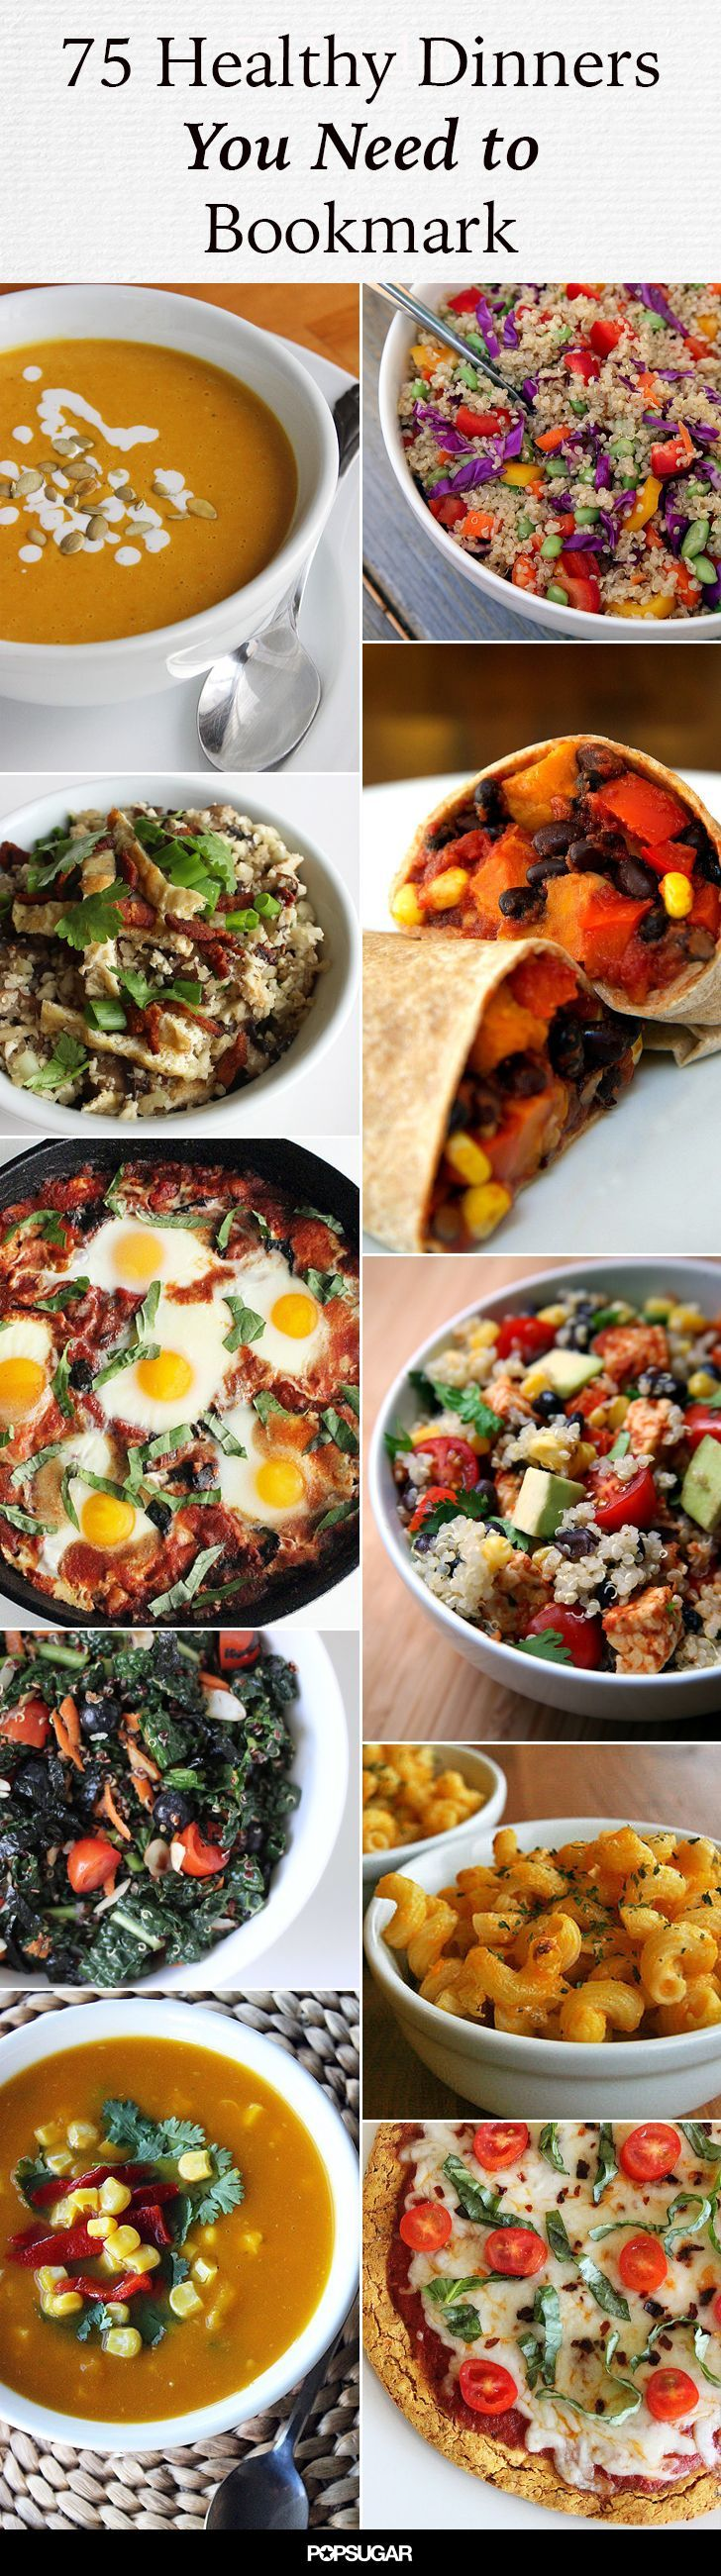 Bookmark this as your new healthy recipe box. With 75 recipes you are sure to find something to make that everyone will love.